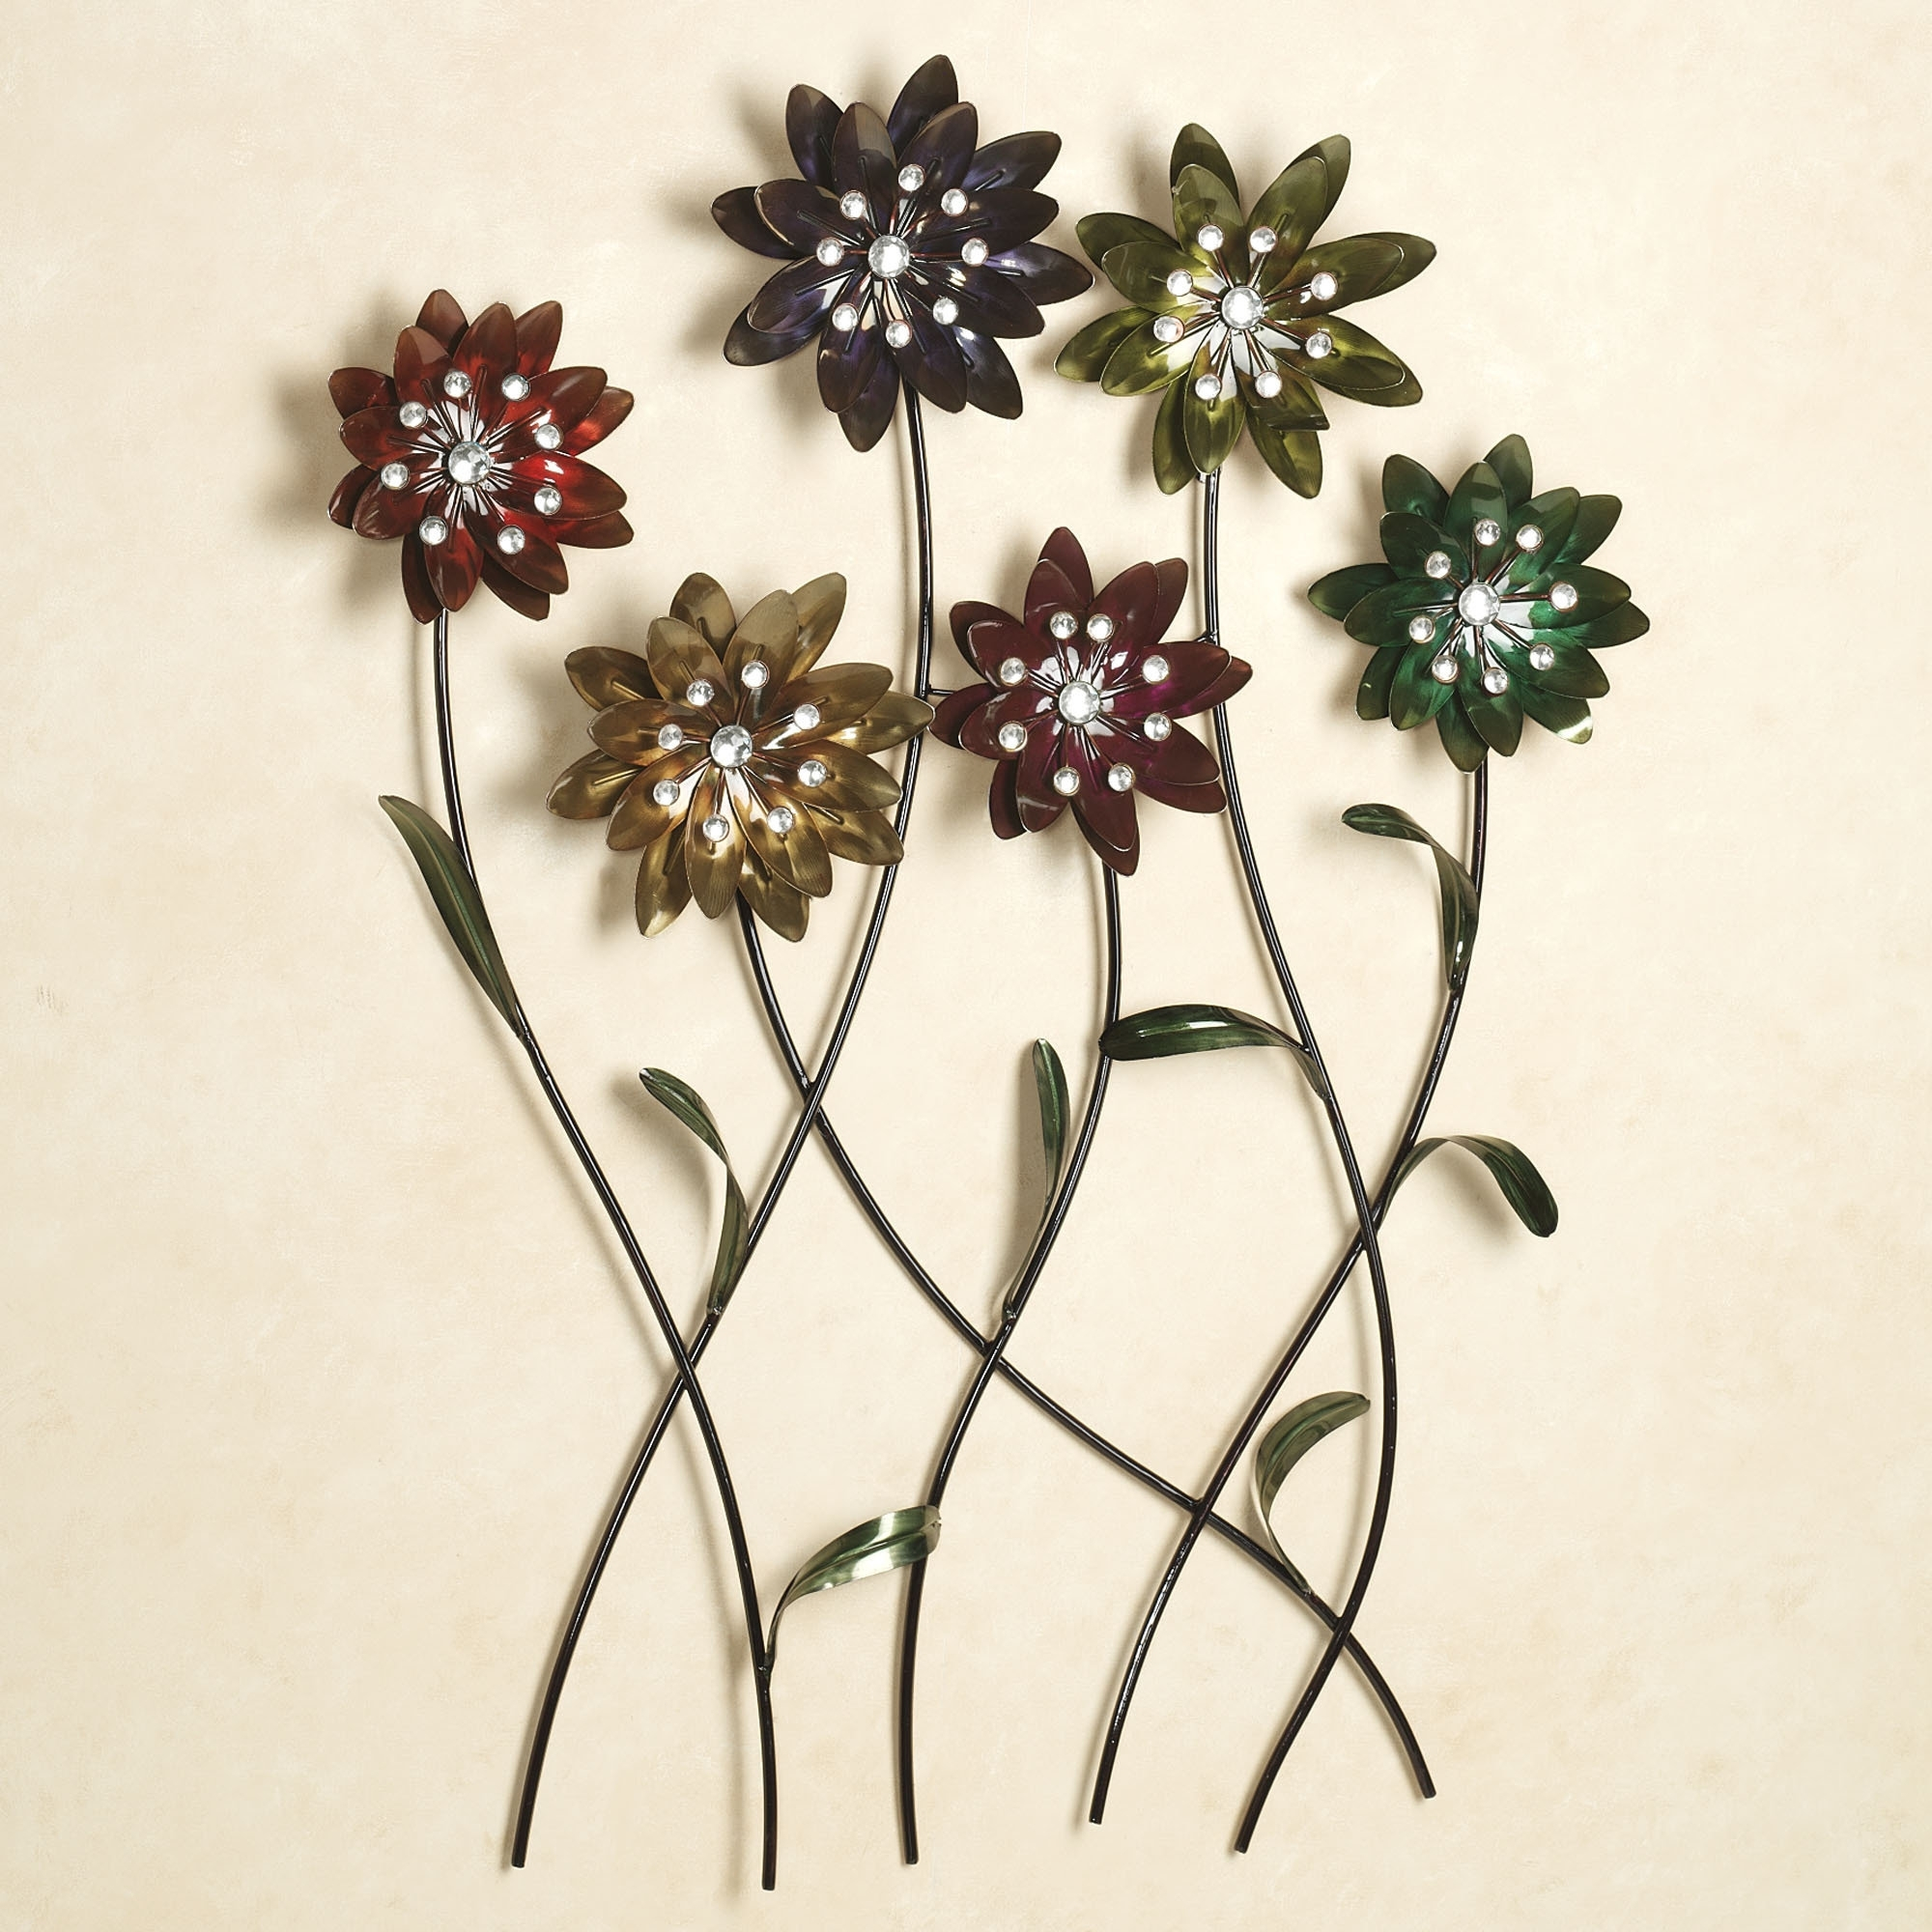 Wall Art Design Ideas: Prodigious Metal Floral Wall Art Wallpaper Pertaining To Most Current Flowers Wall Accents (View 13 of 15)